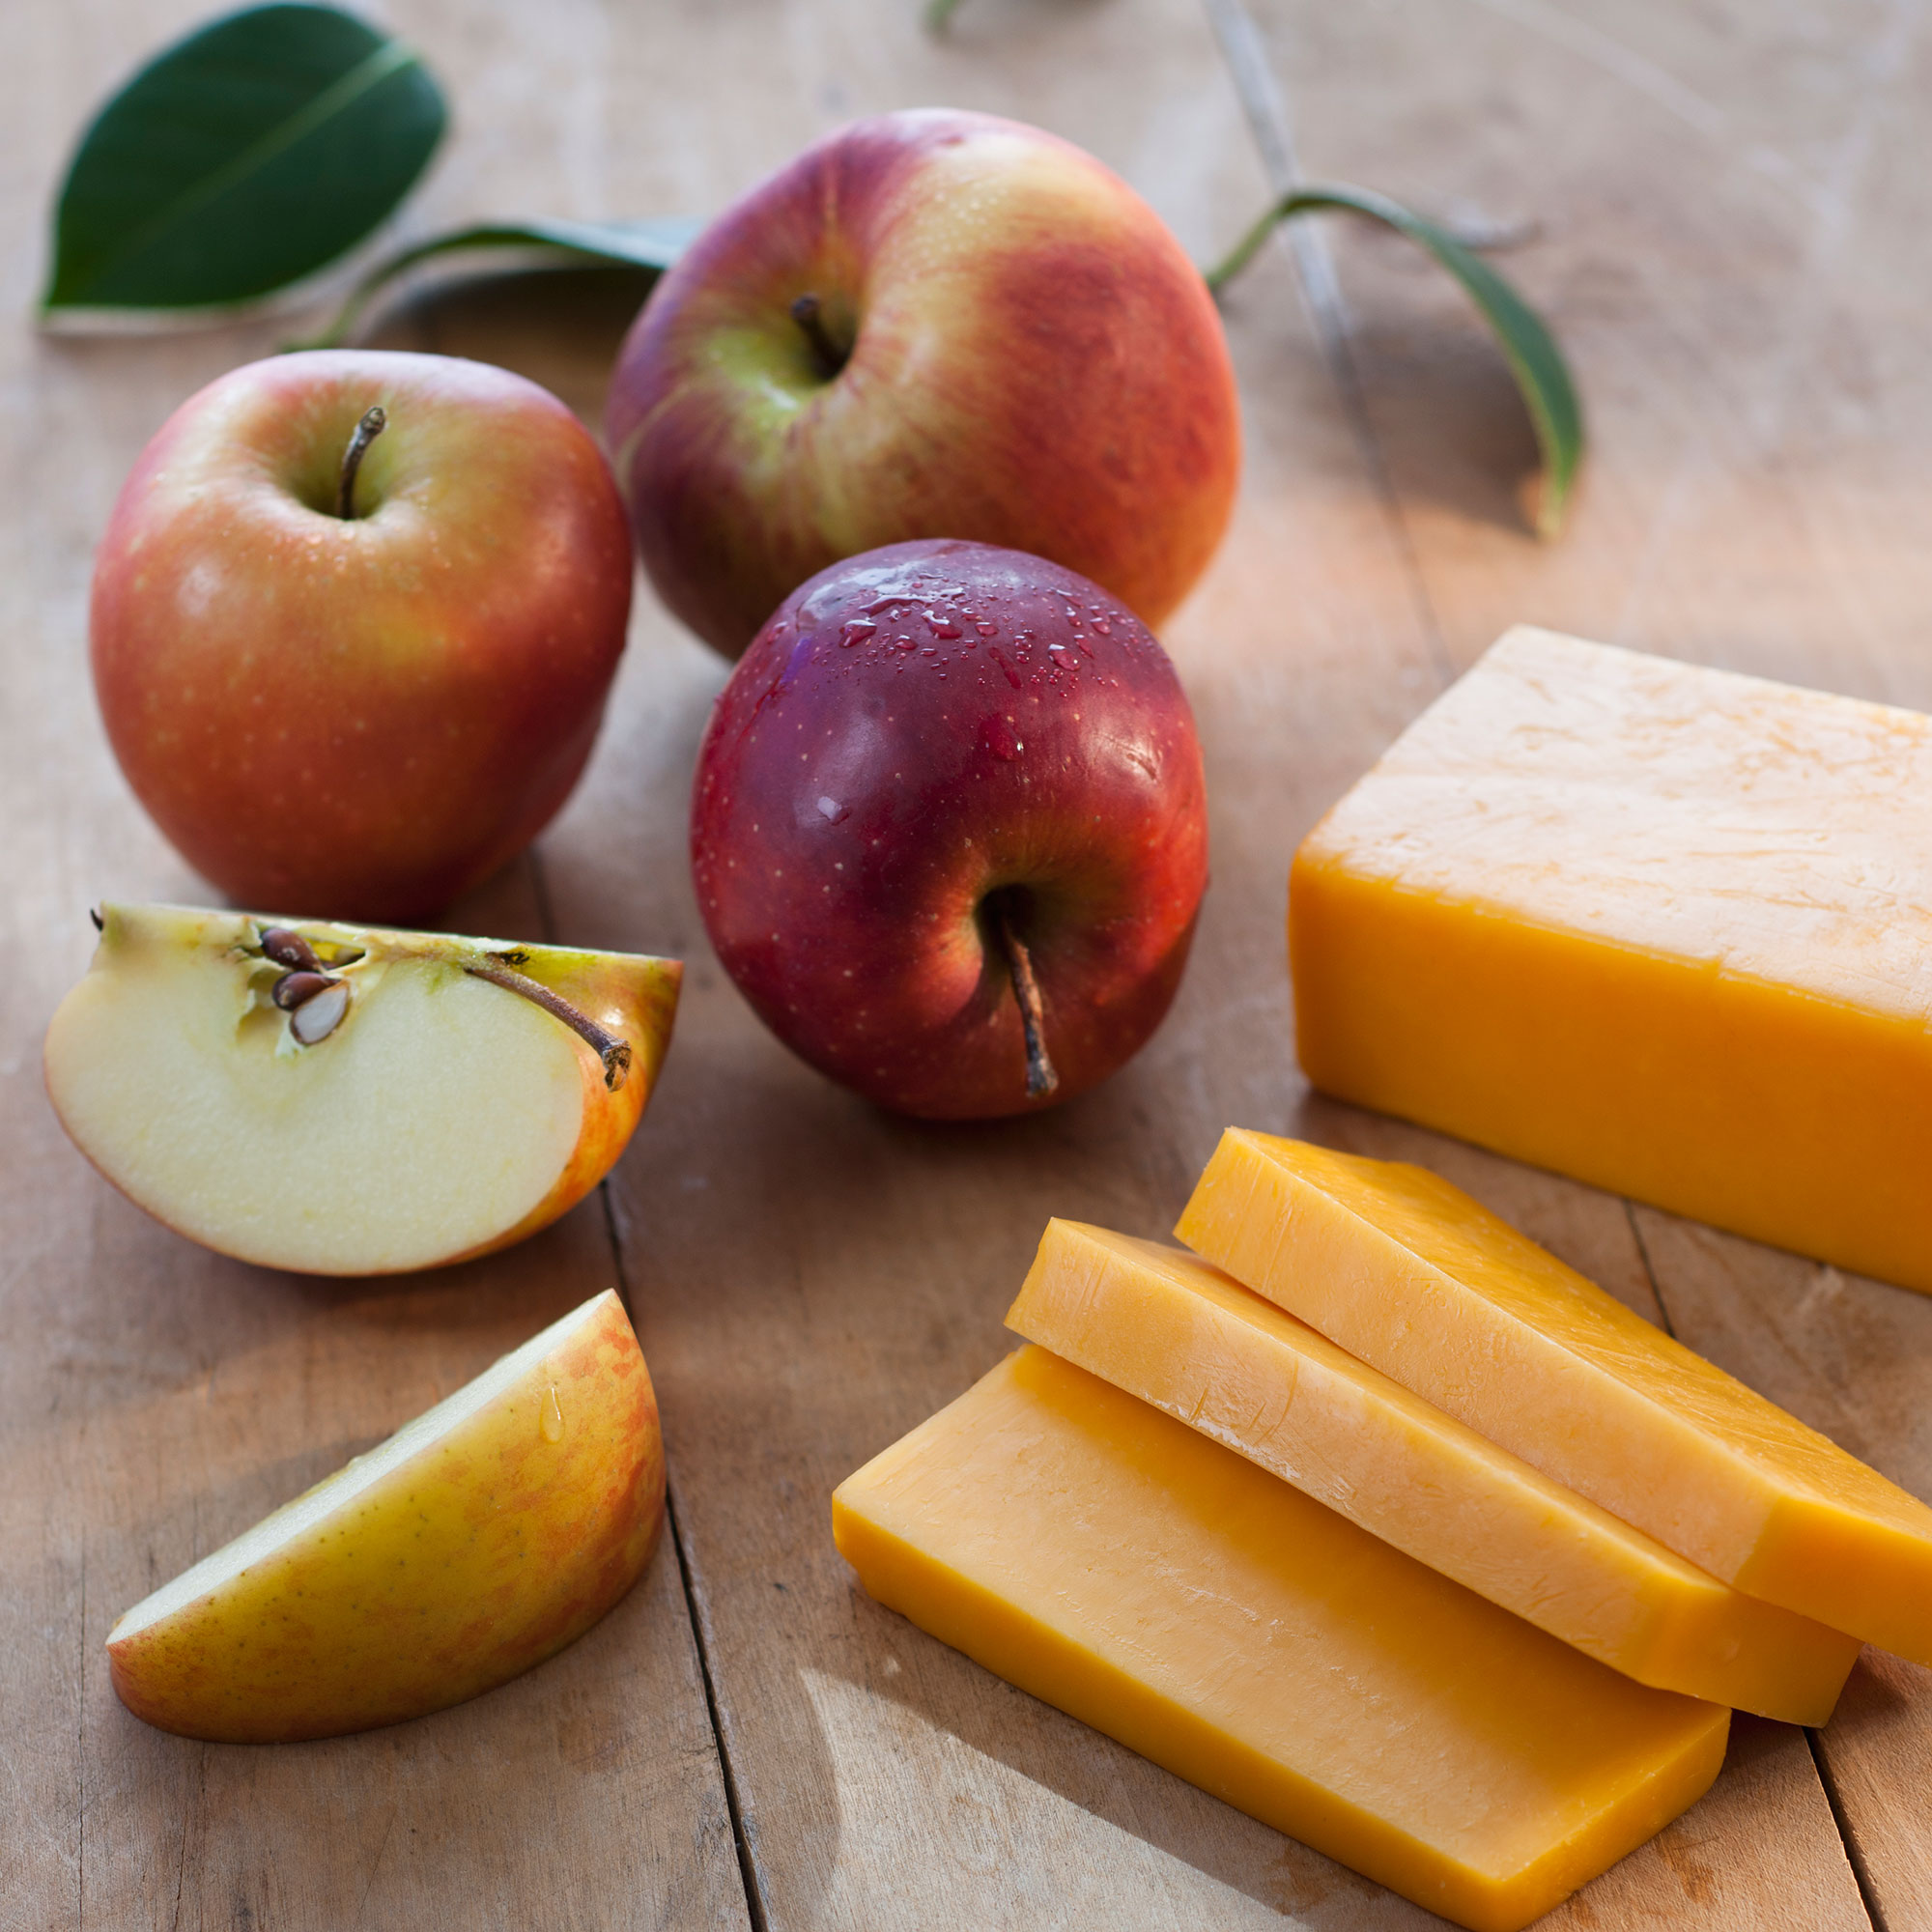 cheese and apple slices